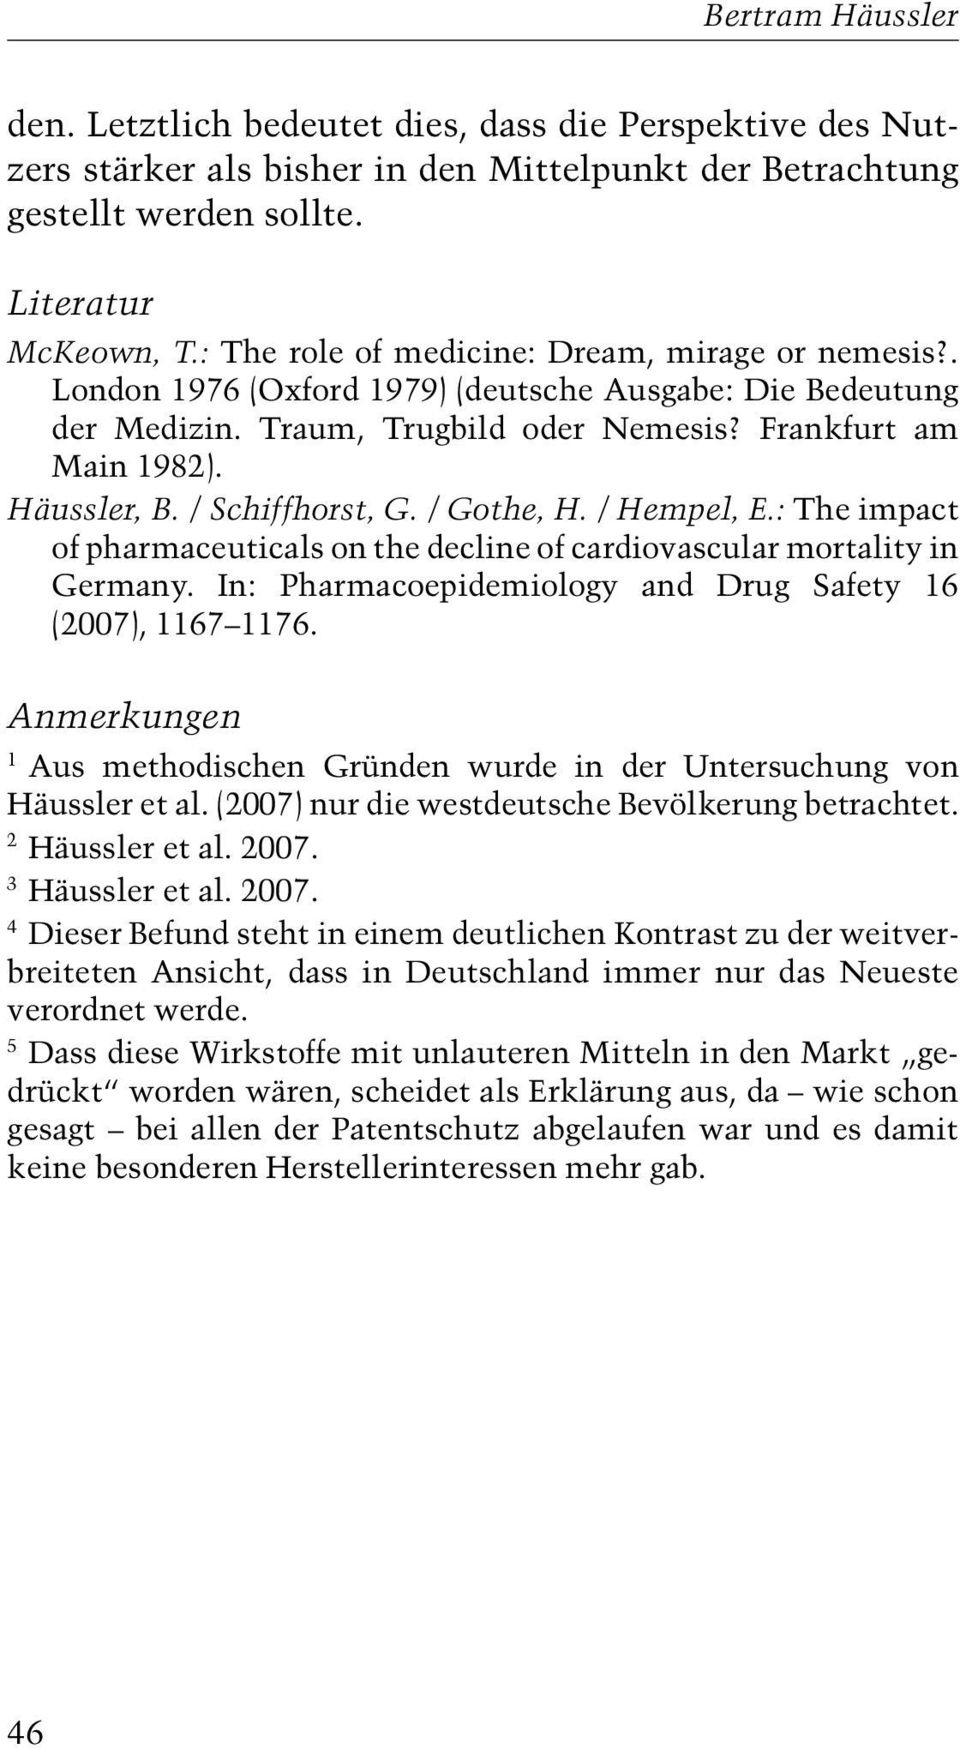 / Schiffhorst, G. / Gothe, H. / Hempel, E.: The impact of pharmaceuticals on the decline of cardiovascular mortality in Germany. In: Pharmacoepidemiology and Drug Safety 16 (2007), 1167 1176.